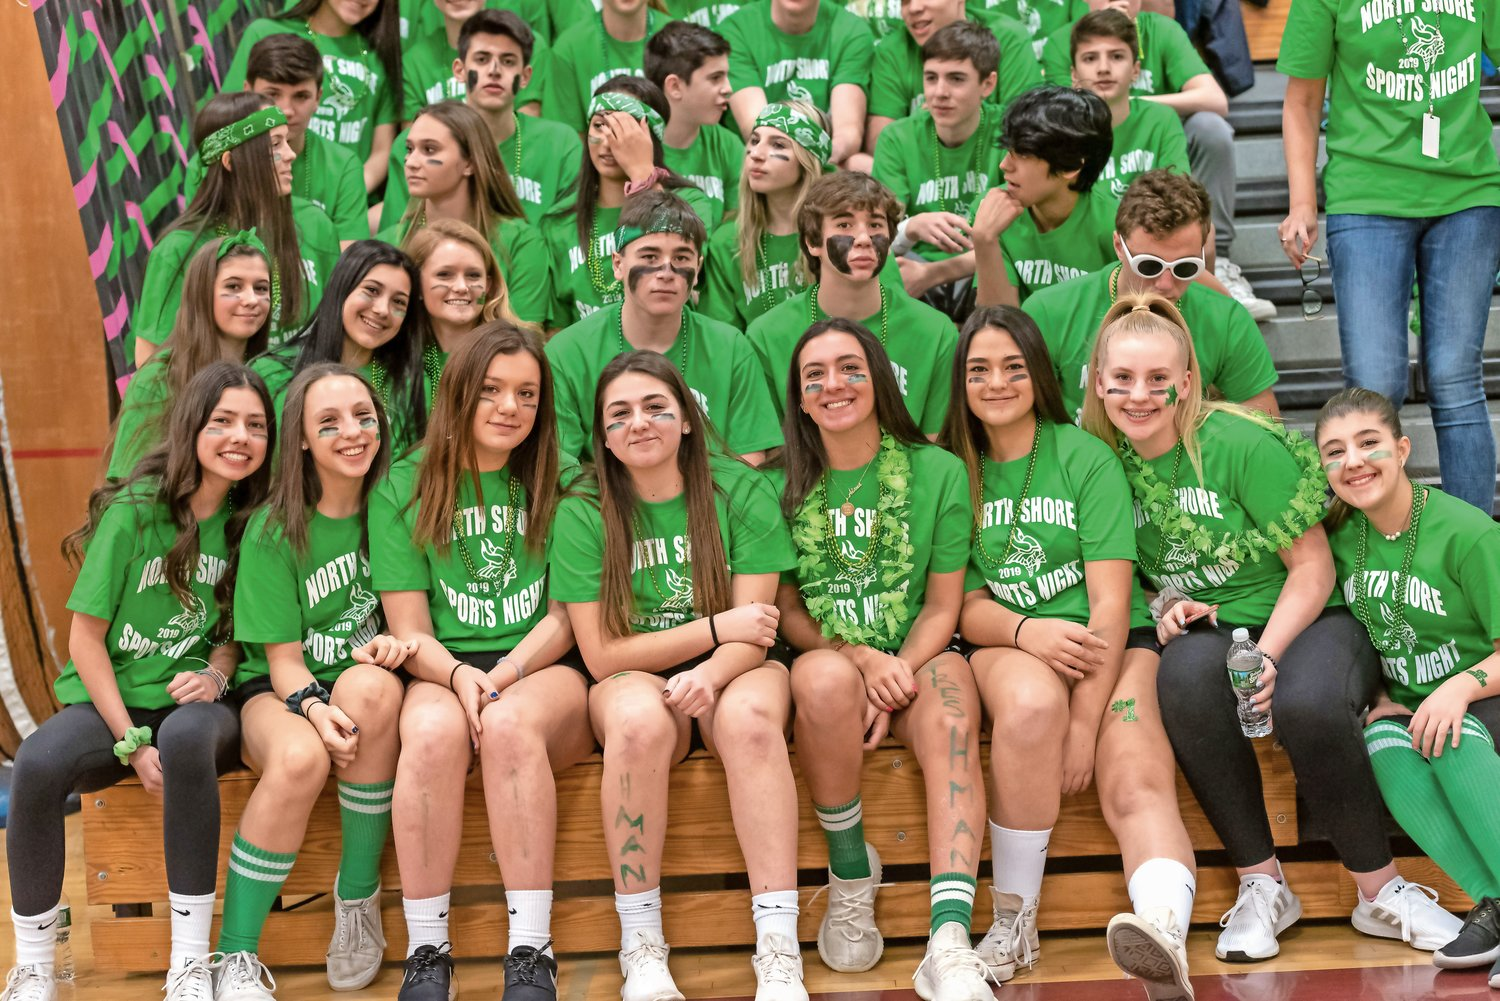 The freshmen class wore green to show their spirit.